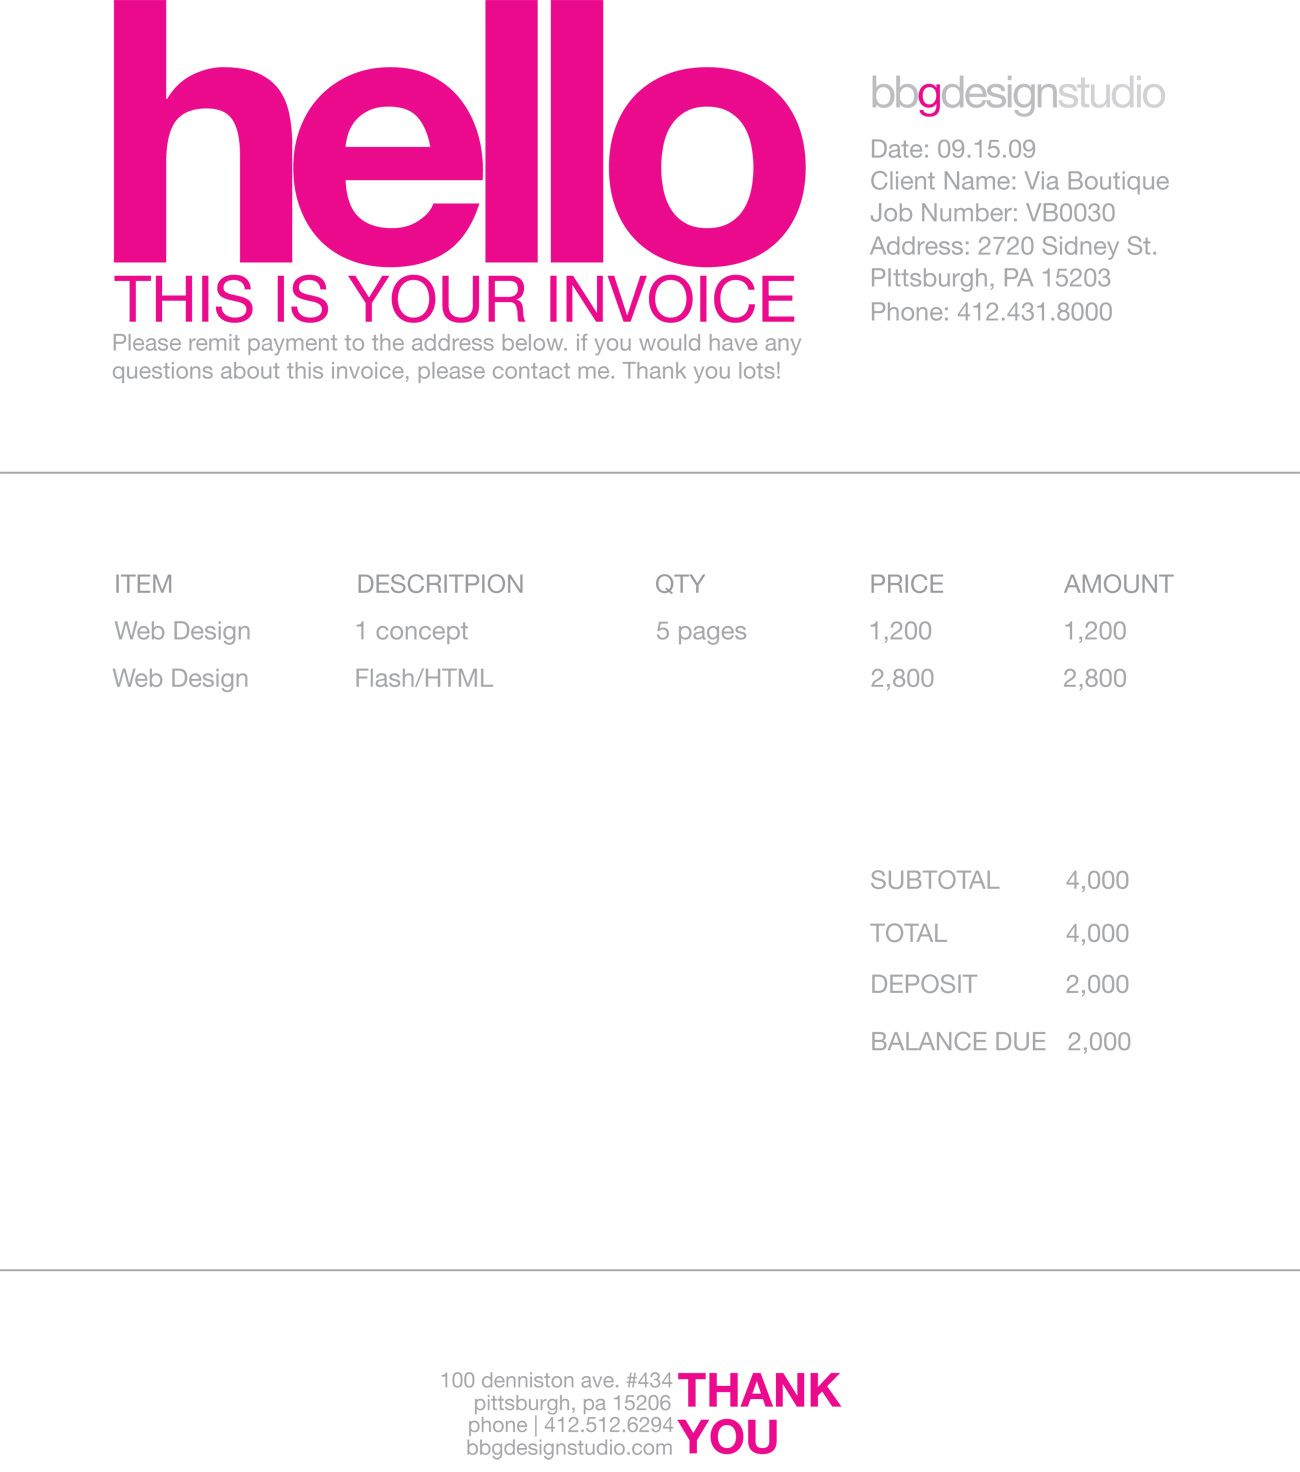 Breakupus  Ravishing  Images About Invoice Design On Pinterest With Handsome Taxpayer Receipt Besides Rite Aid Receipt Furthermore Receipt Holders With Adorable Certified Mail Receipt Cost Also Evernote Receipt Scanner In Addition Copy Of The Receipt And Send Receipt Gmail As Well As Usmc Cif Gear Receipt Additionally Read Receipts In Outlook From Pinterestcom With Breakupus  Handsome  Images About Invoice Design On Pinterest With Adorable Taxpayer Receipt Besides Rite Aid Receipt Furthermore Receipt Holders And Ravishing Certified Mail Receipt Cost Also Evernote Receipt Scanner In Addition Copy Of The Receipt From Pinterestcom